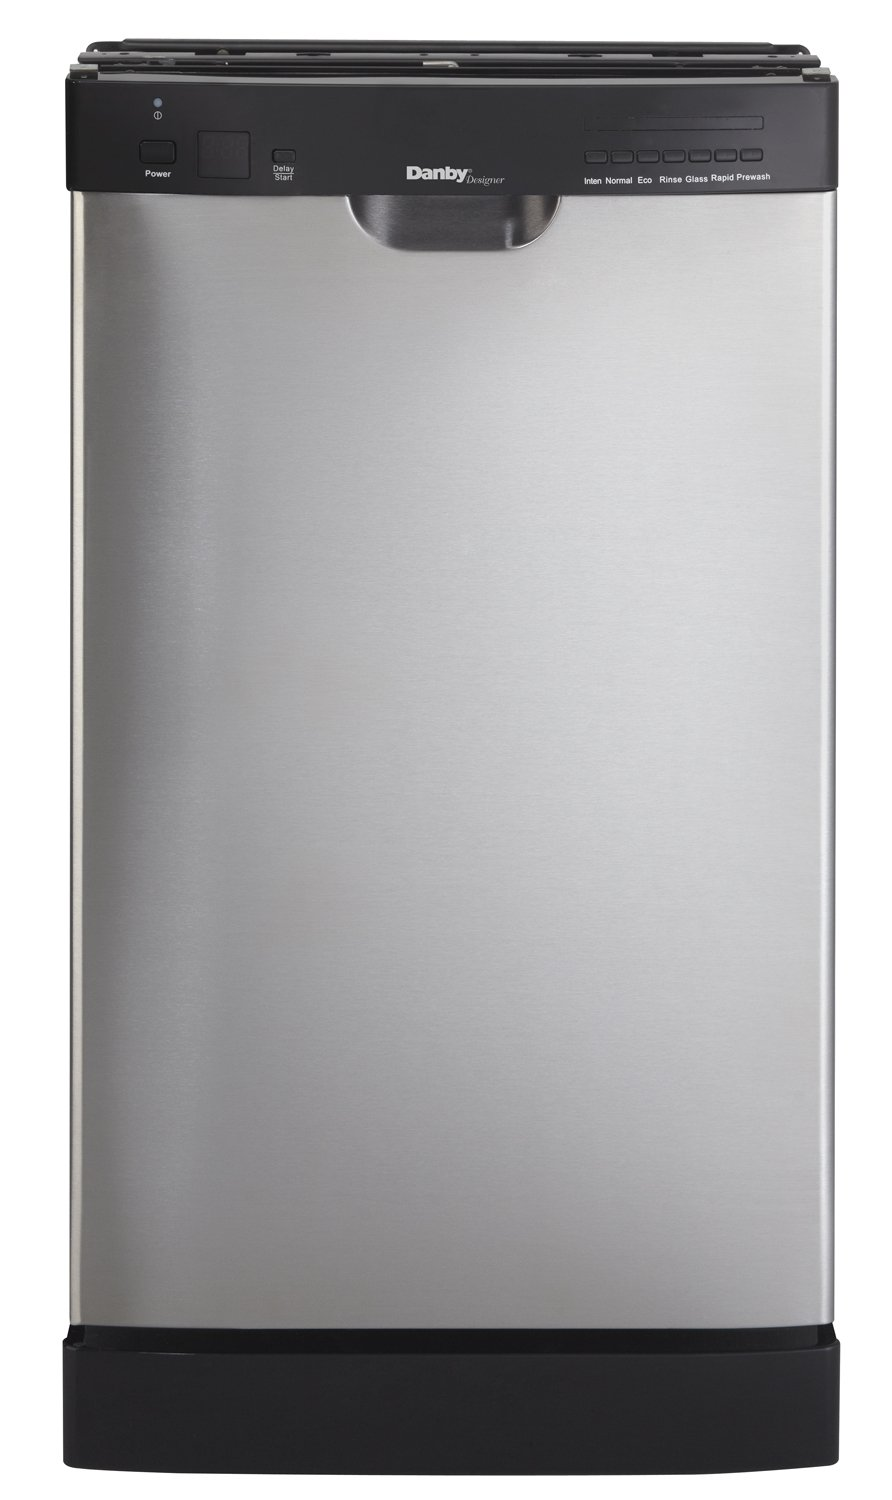 10 BEST Bosch 18 Inch Dishwashers of March 2020 13